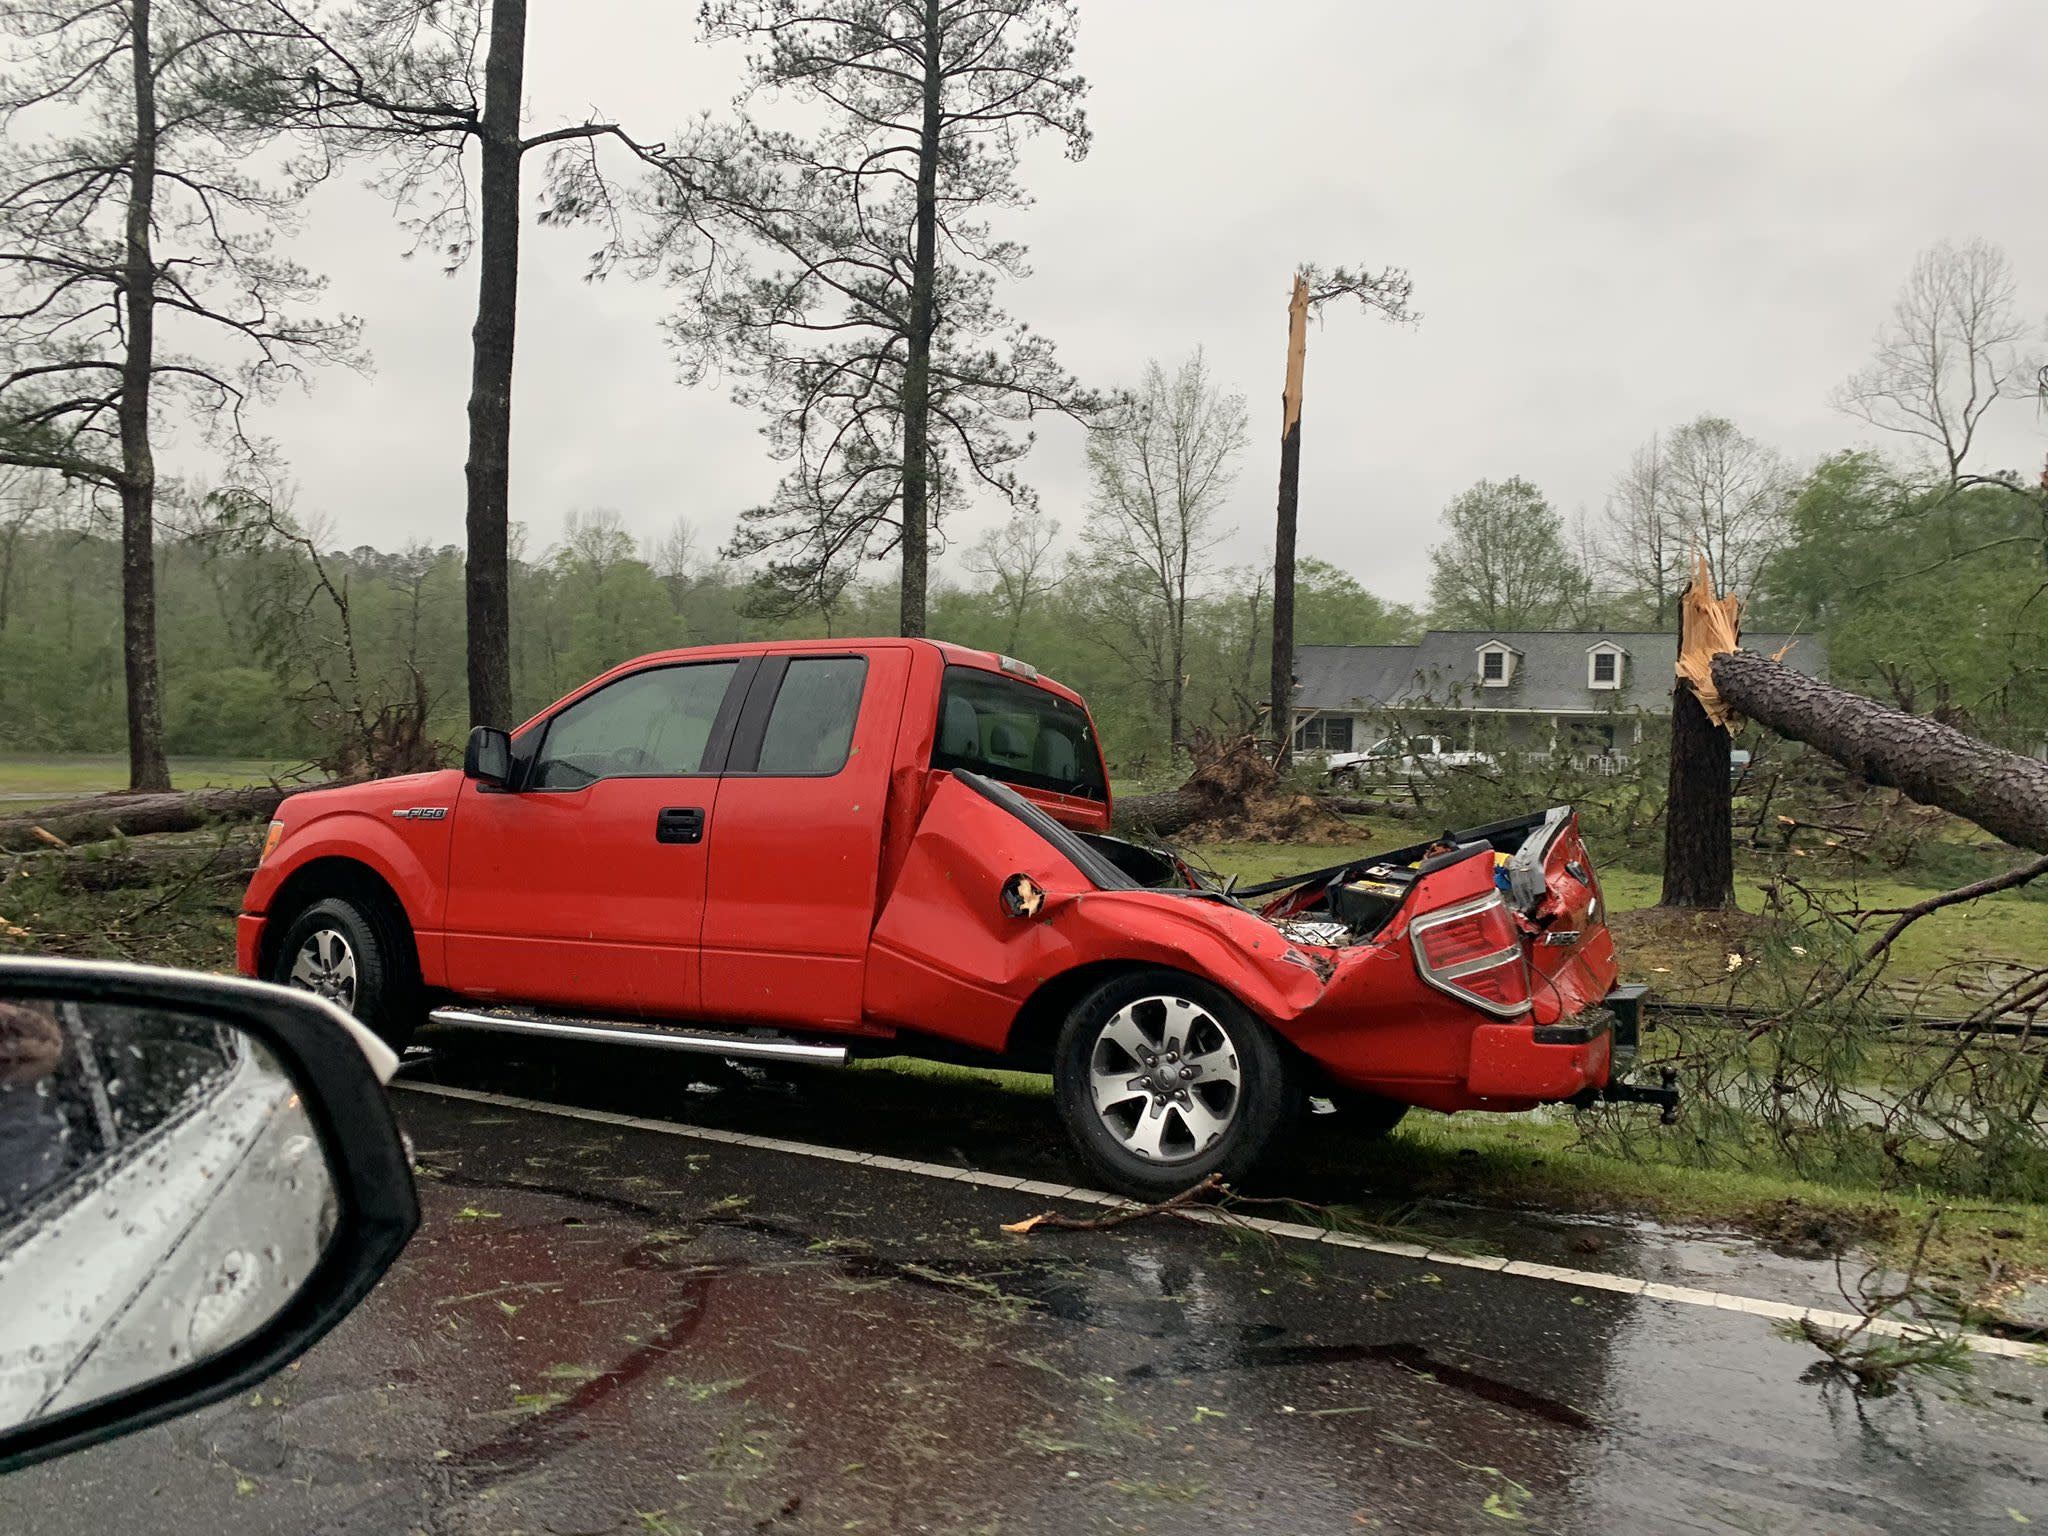 Storms hit South in prelude to tornado threat